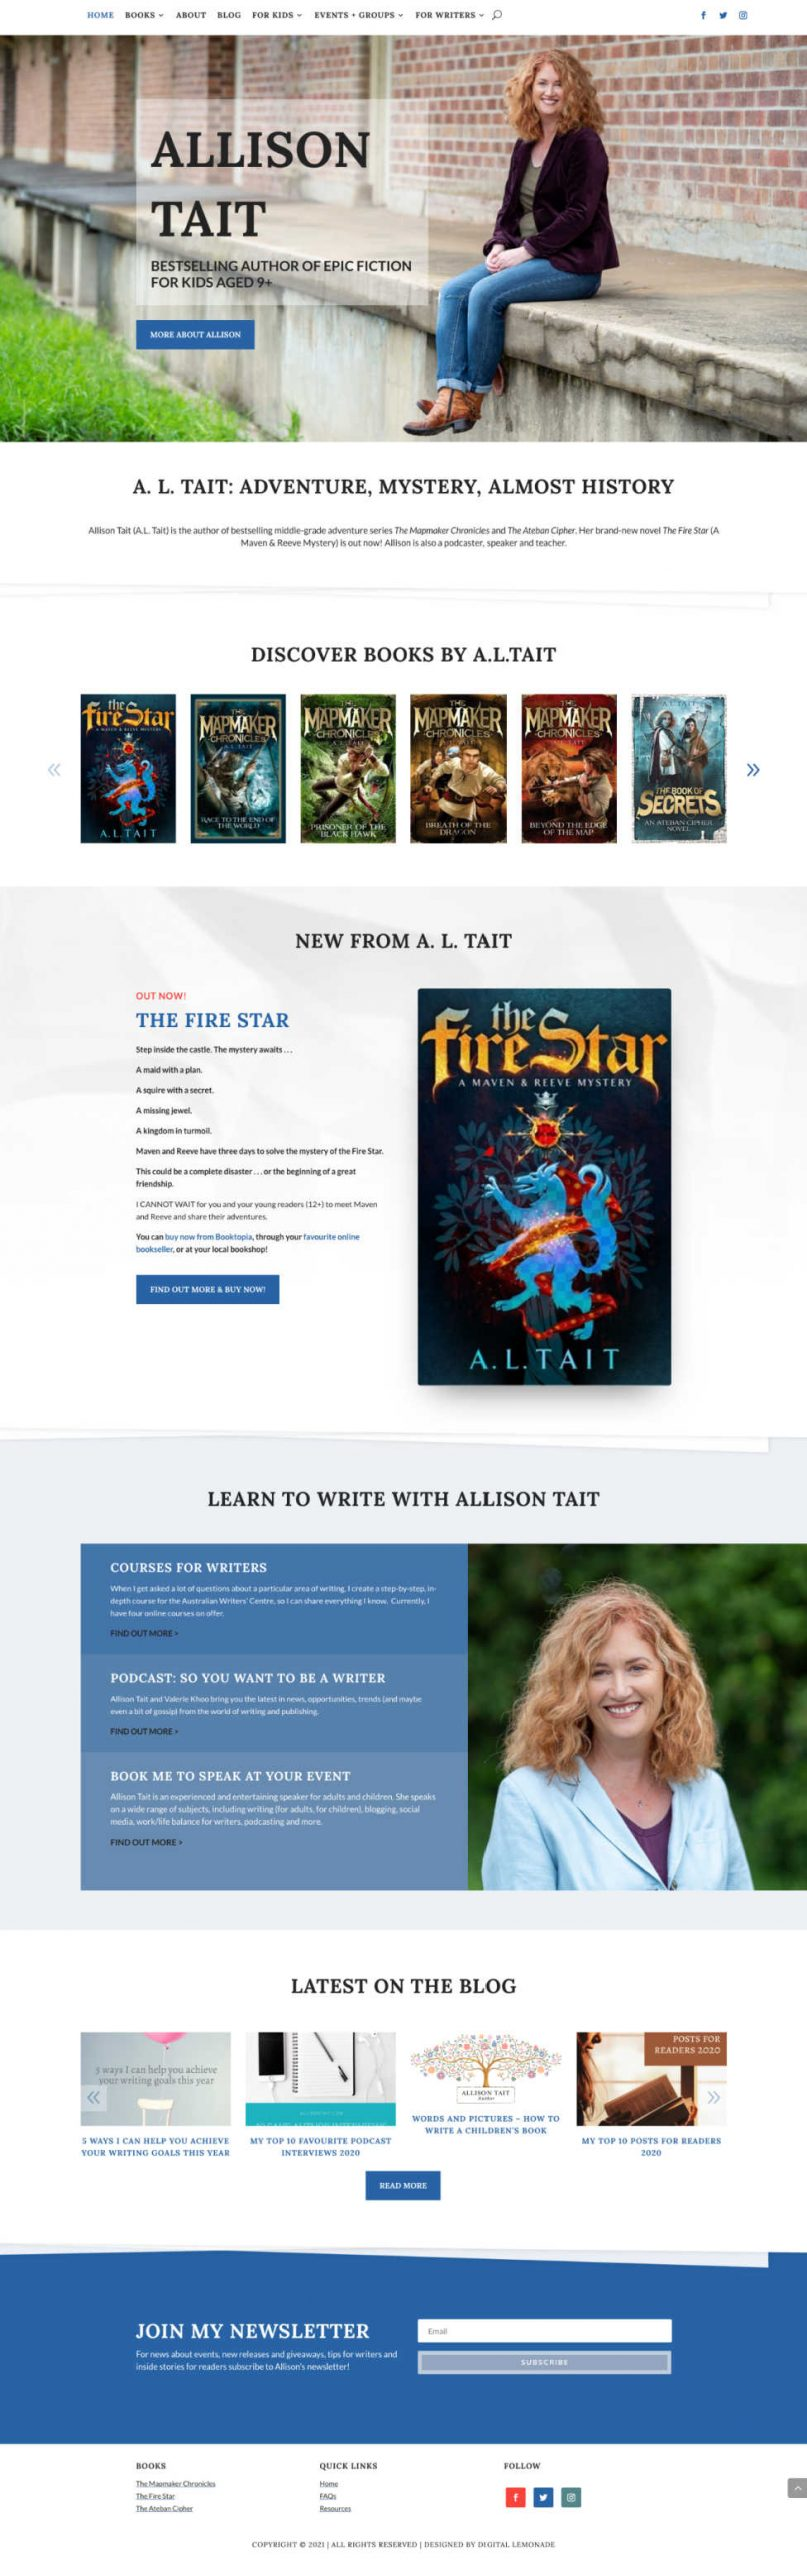 Allison Tait Author website